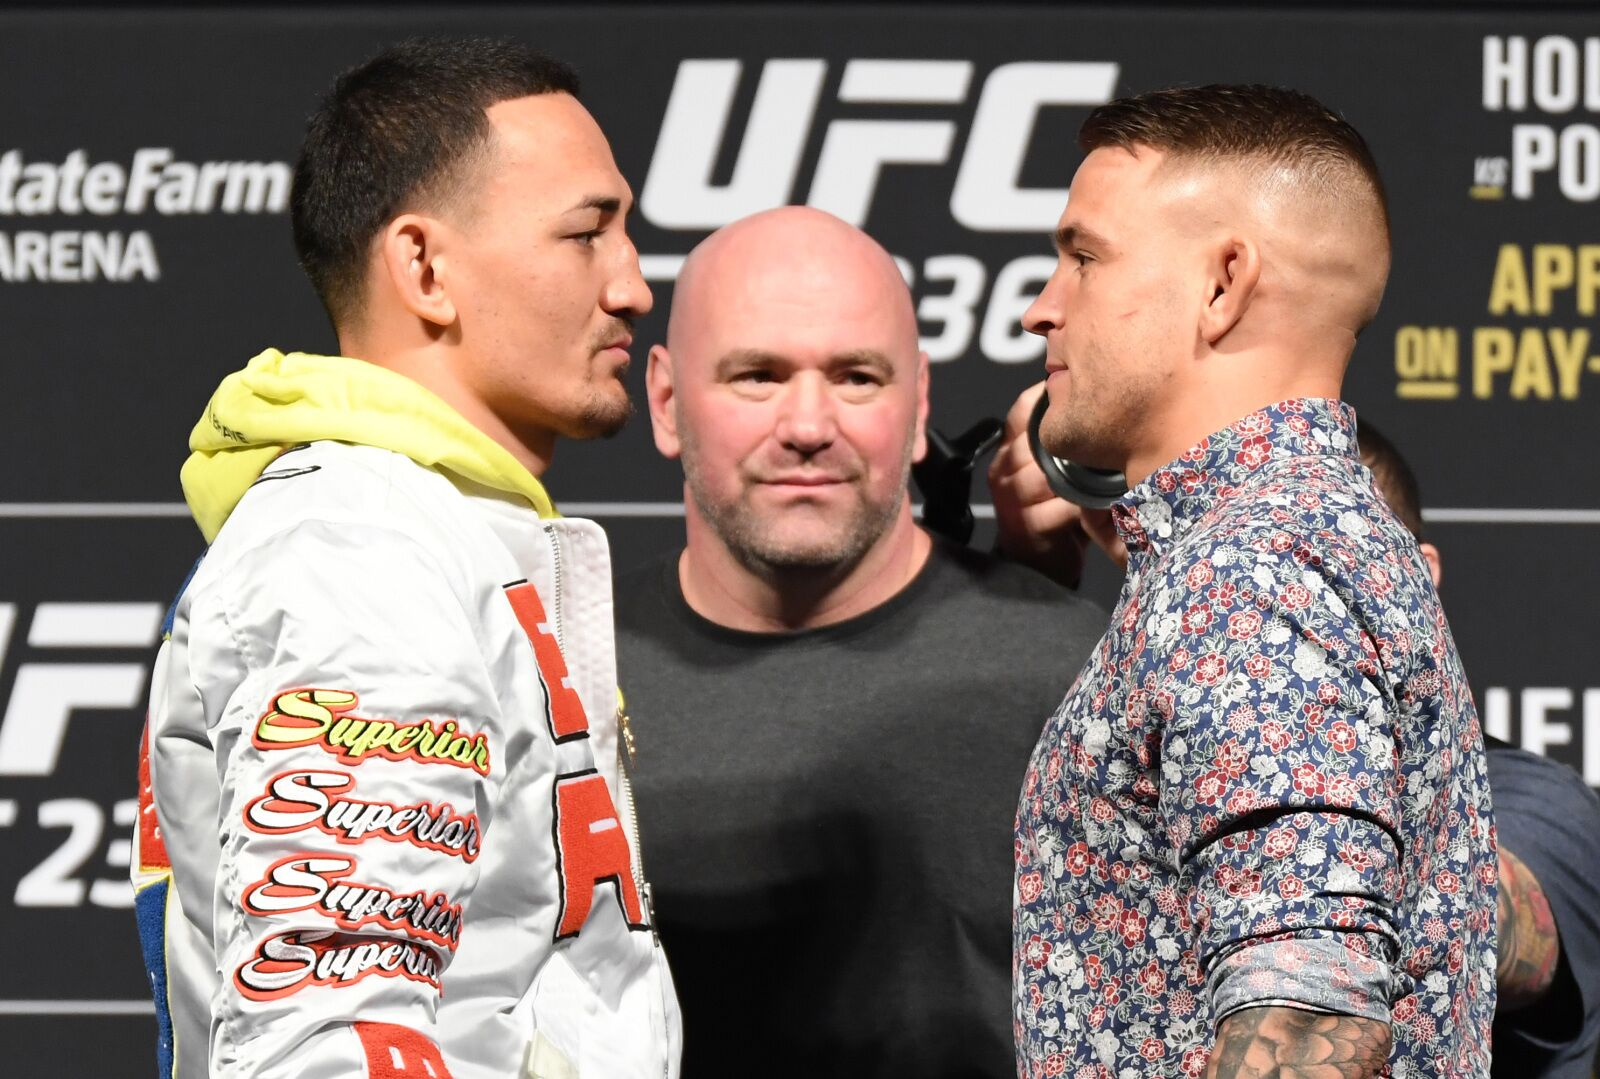 Max Holloway gives signed UFC 236 gloves for Dustin Poirier's charity